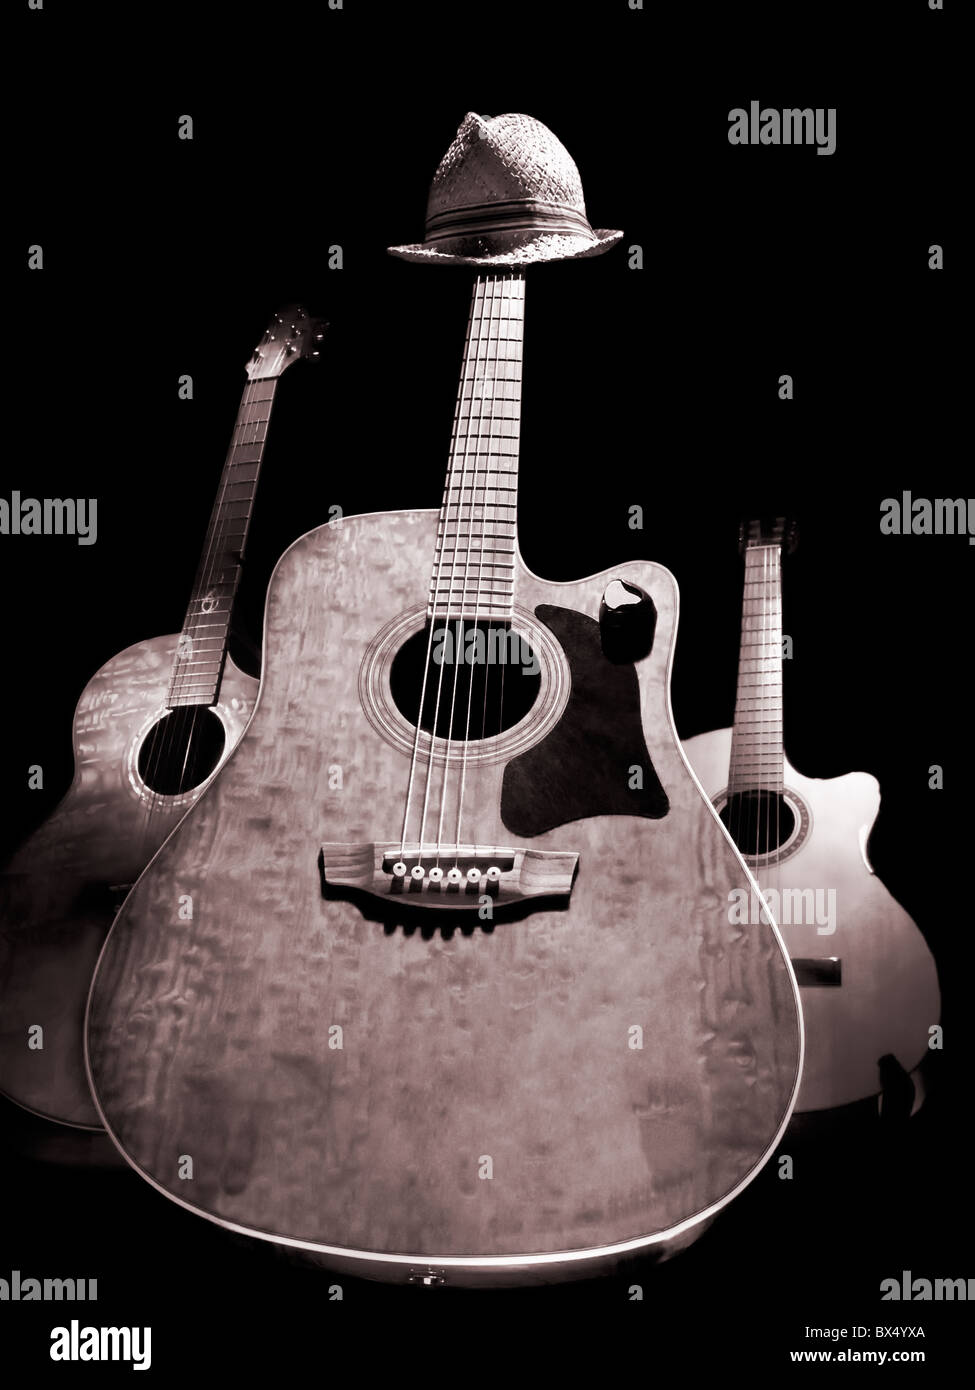 Three Acoustic Guitars Over Black Background Black And White Image